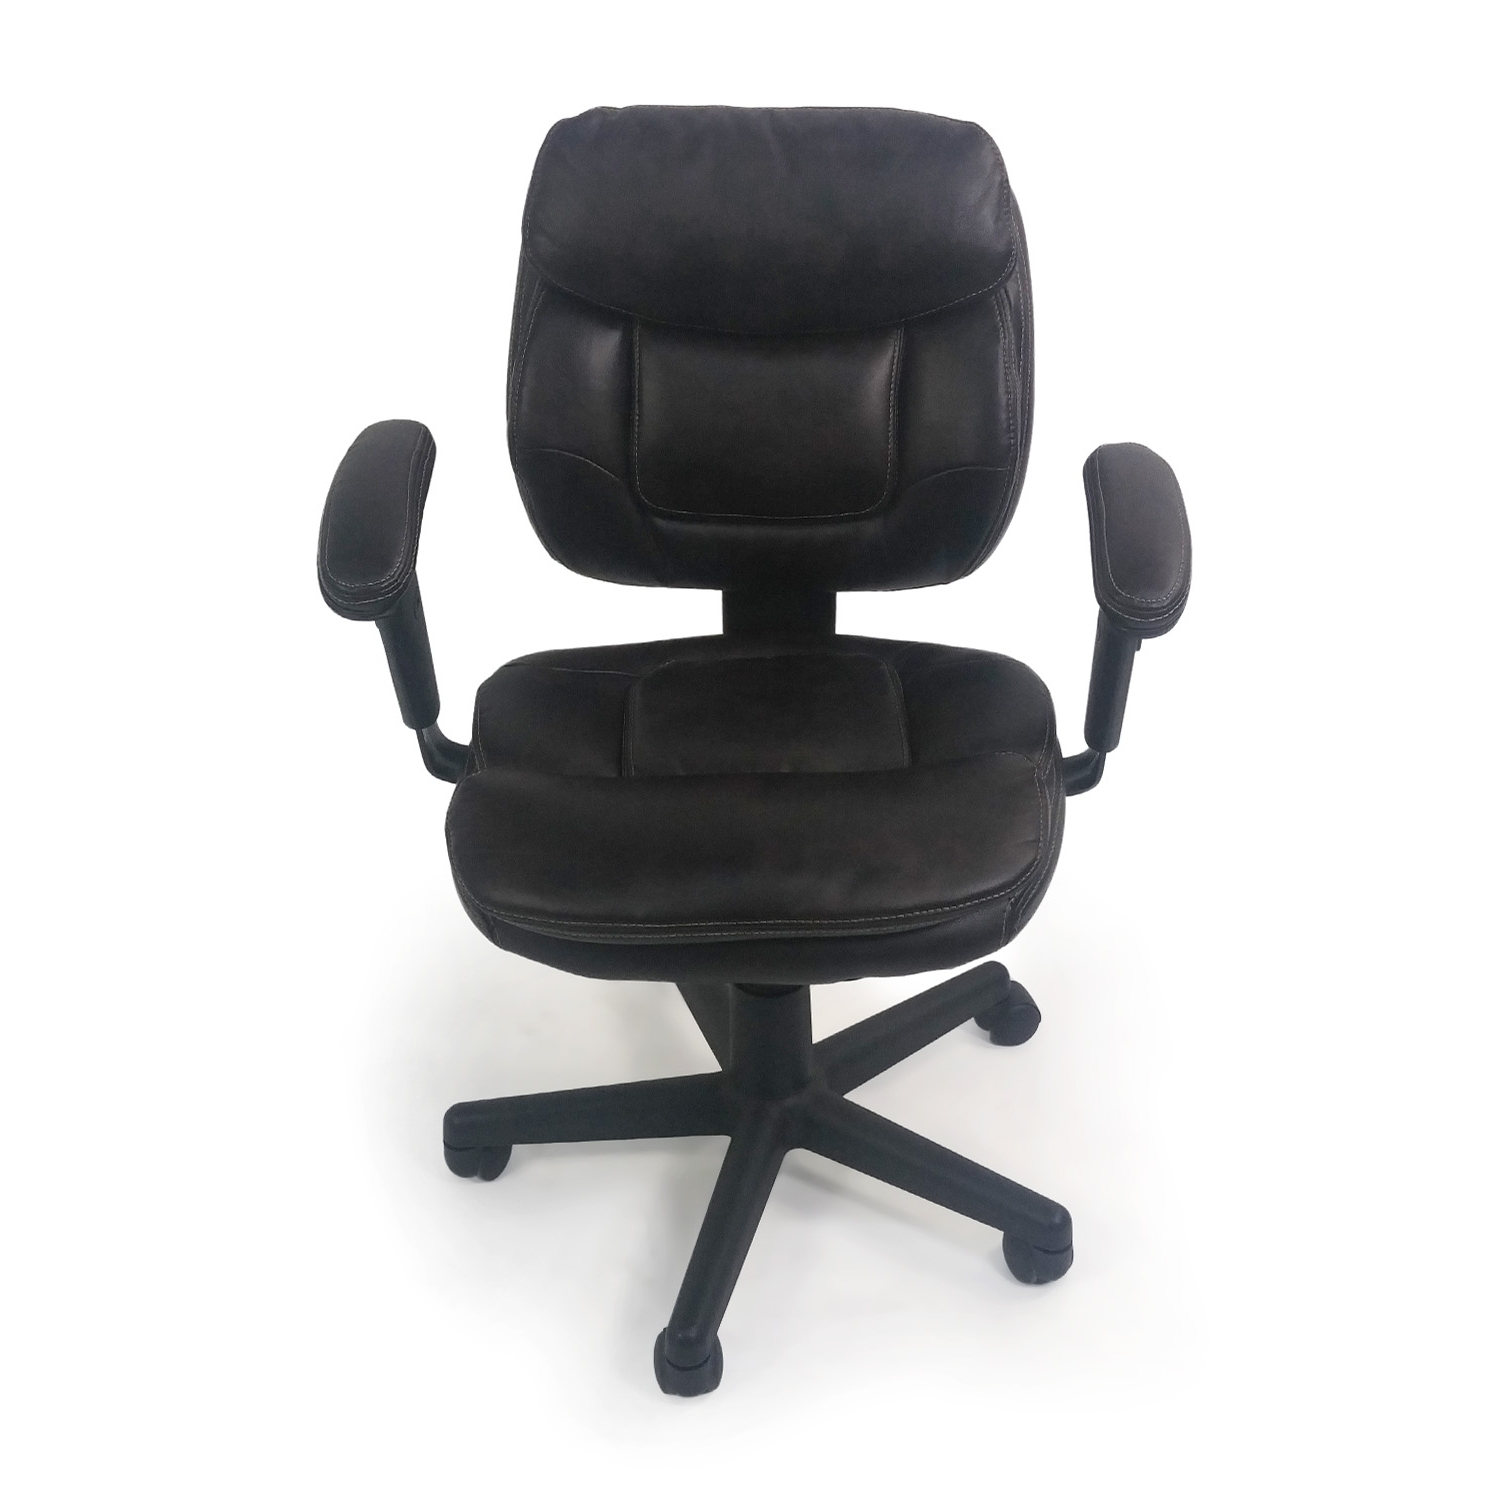 [%86% Off – Plush Faux Leather Office Chair / Chairs Within Recent Plush Executive Office Chairs|plush Executive Office Chairs Throughout Famous 86% Off – Plush Faux Leather Office Chair / Chairs|recent Plush Executive Office Chairs In 86% Off – Plush Faux Leather Office Chair / Chairs|2018 86% Off – Plush Faux Leather Office Chair / Chairs With Regard To Plush Executive Office Chairs%] (View 19 of 20)